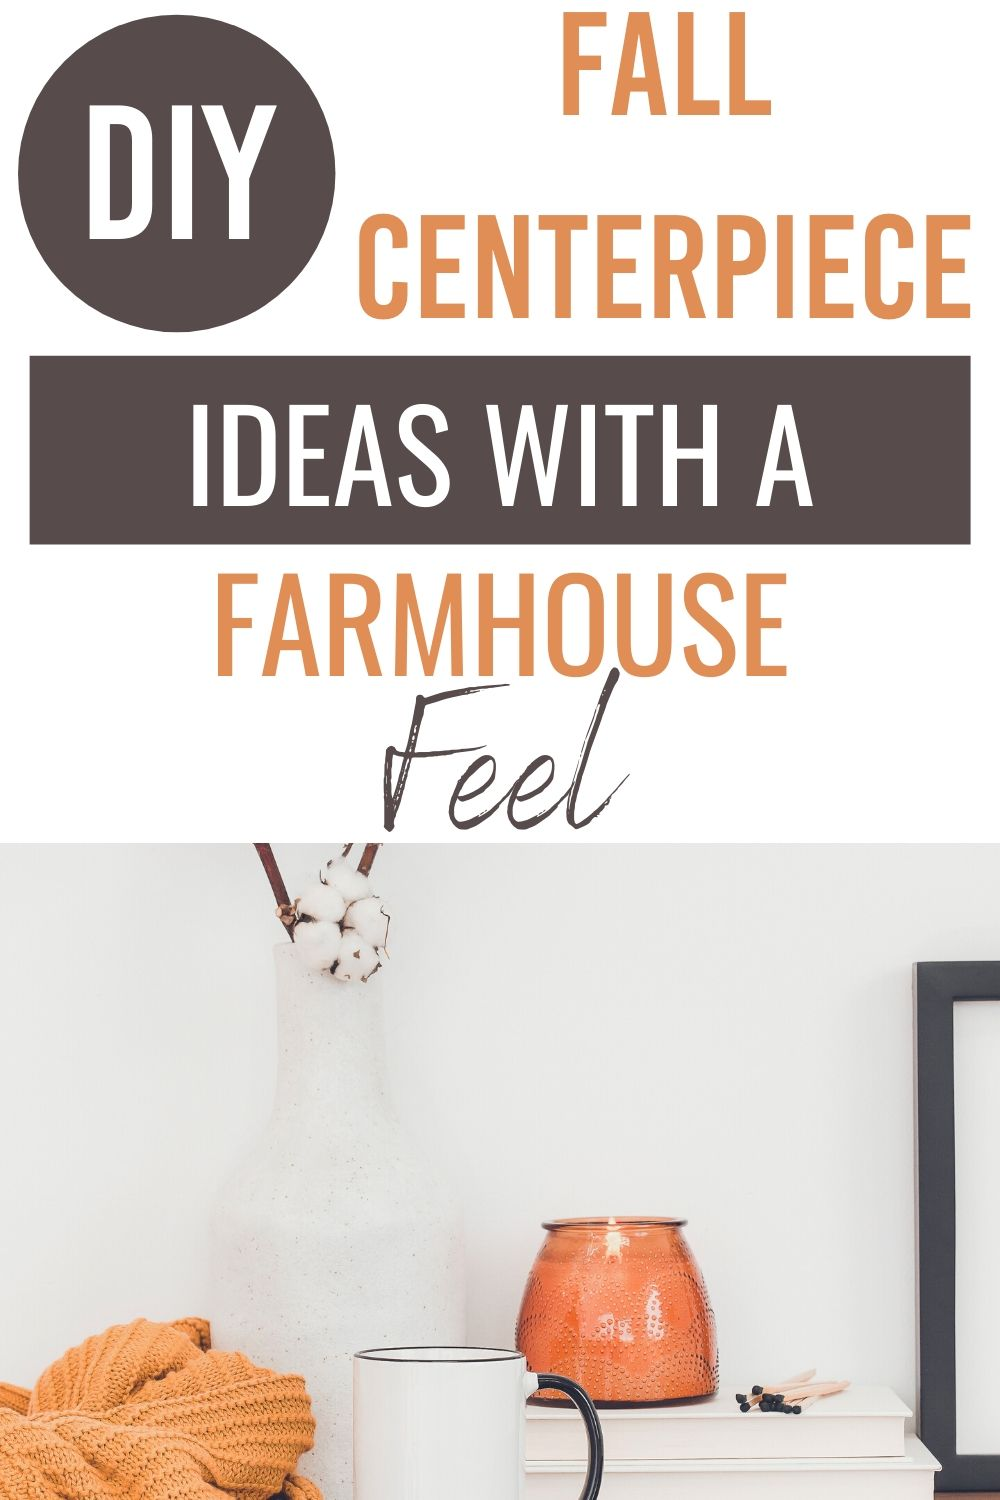 Here are a handful of DIY Rustic Farmhouse Fall Centerpiece Ideas to add style and dress up your home this fall. Simple and elegant designs that are easy to do | #fall #decor #DIY #easy #howto #farmhouse #centerpiece #tabledecor #home via @homebyjenn